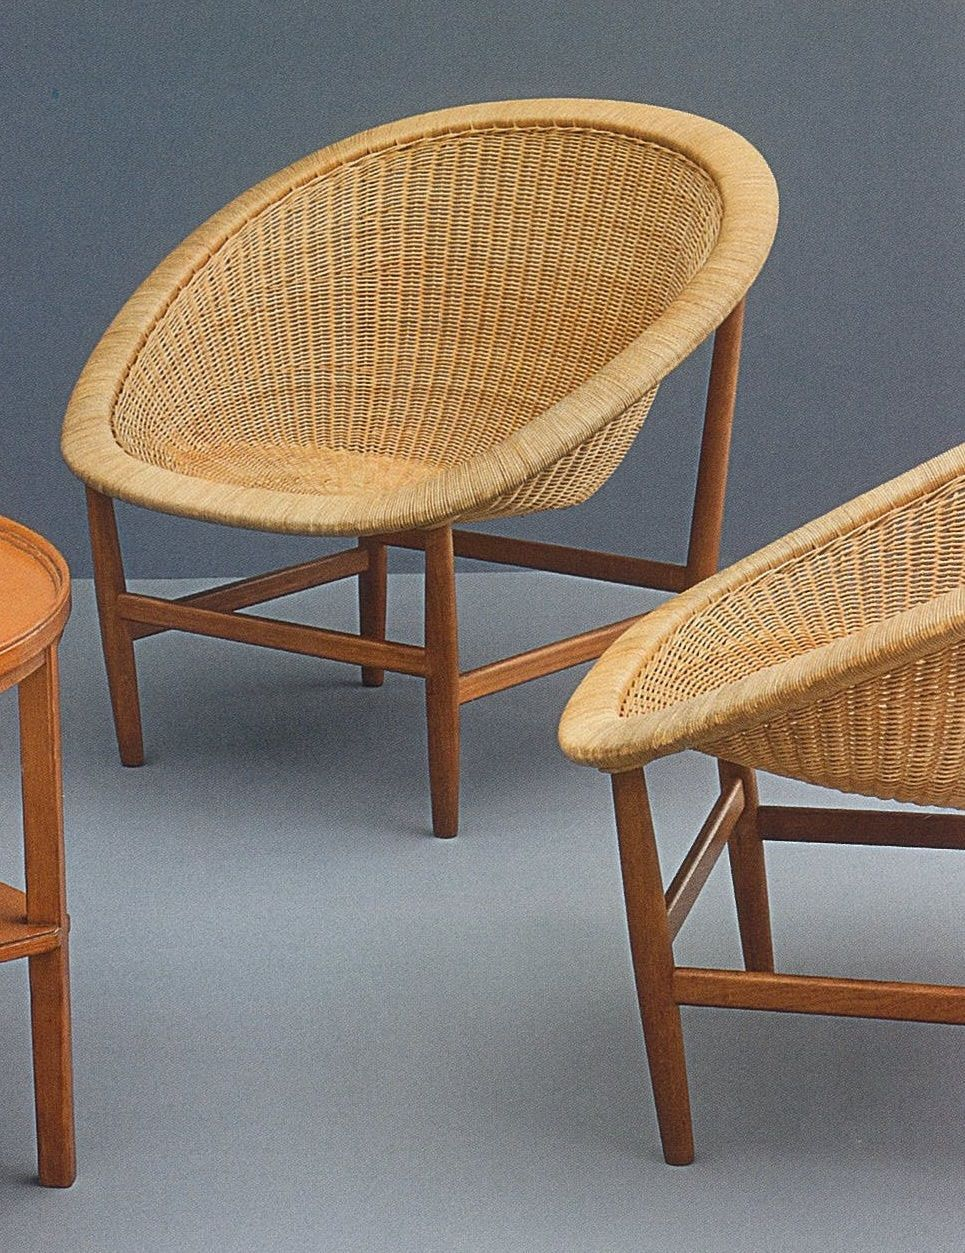 Basket Chair Created In The 1950s By Danish Designers